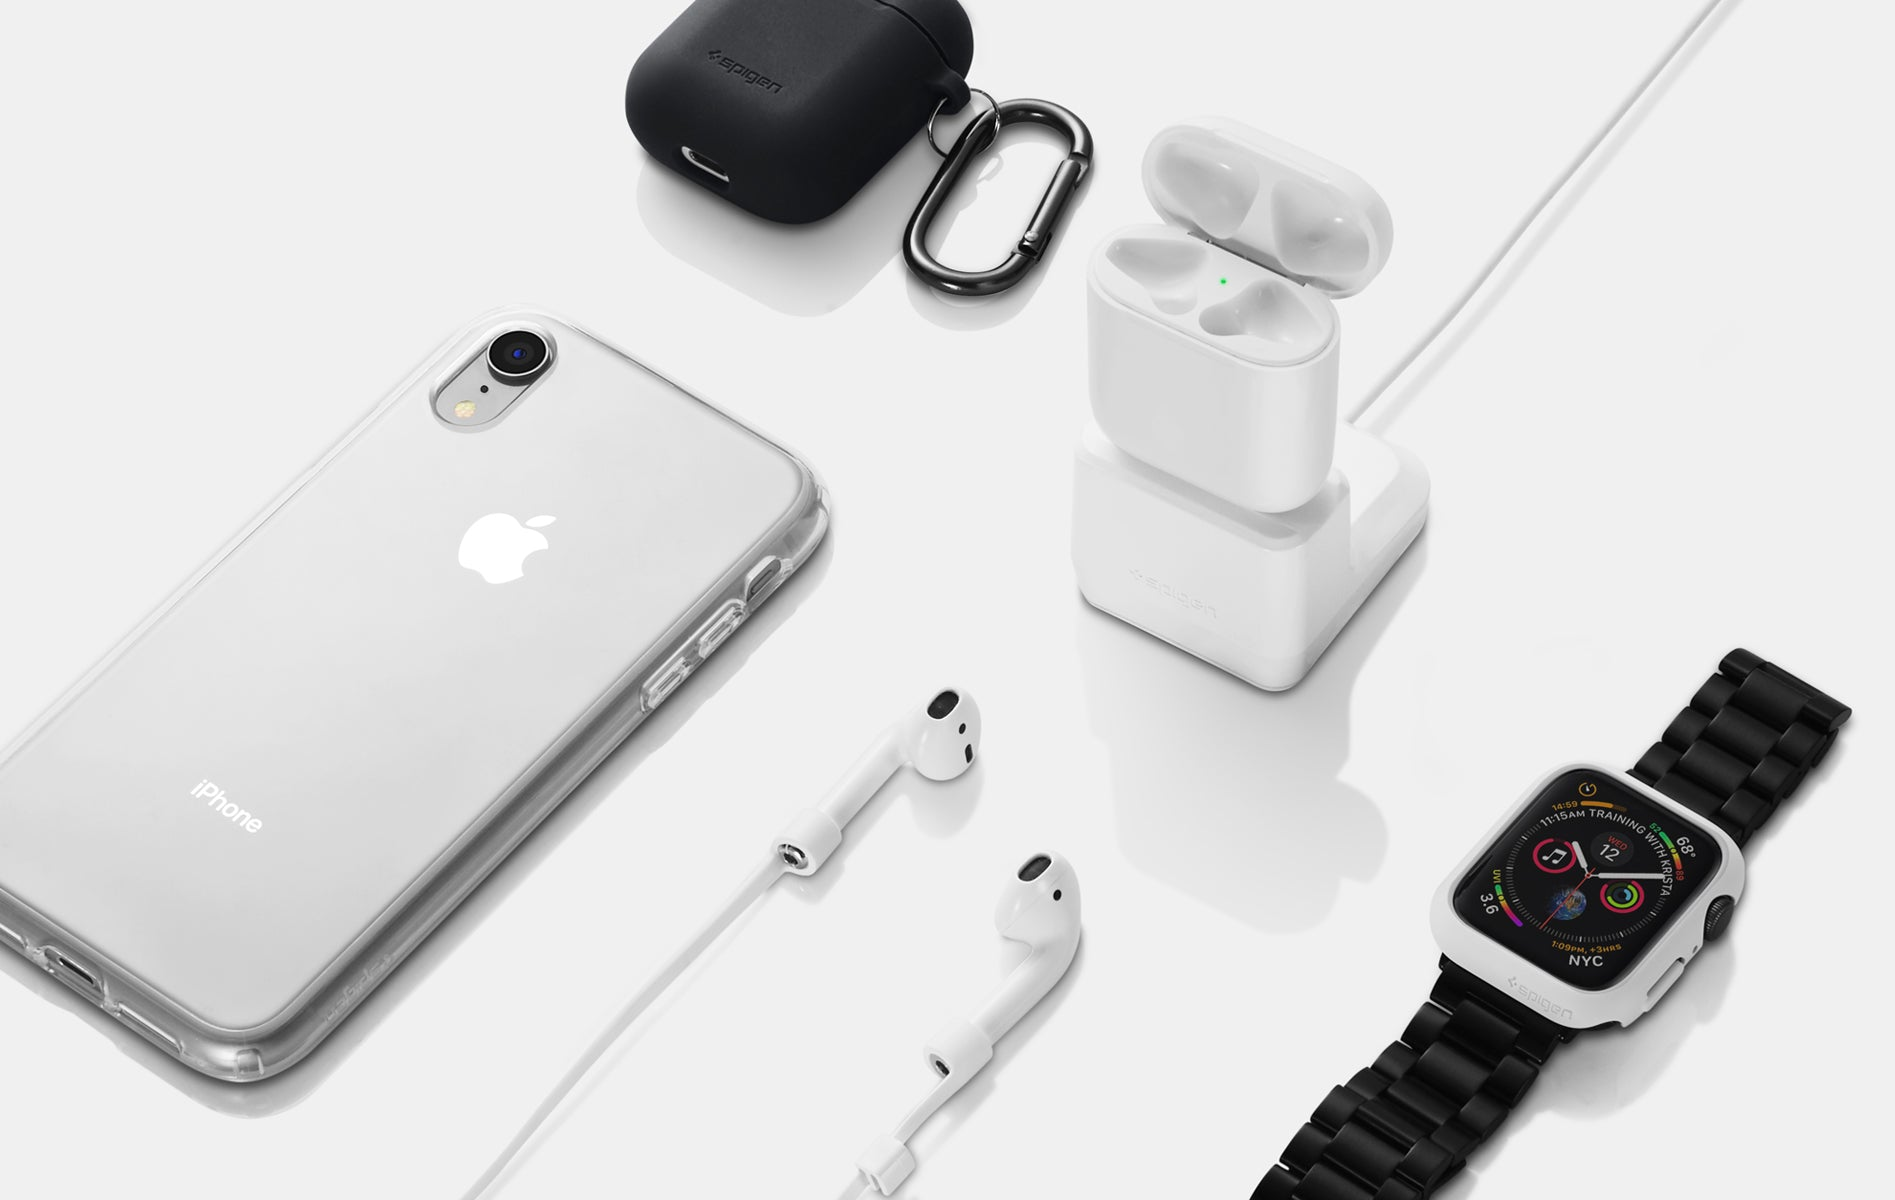 A collection of Airpods Silicone Black case, Airpods charger, iPhone in clear case, Airpods with a strap, and an Apple watch with black band.